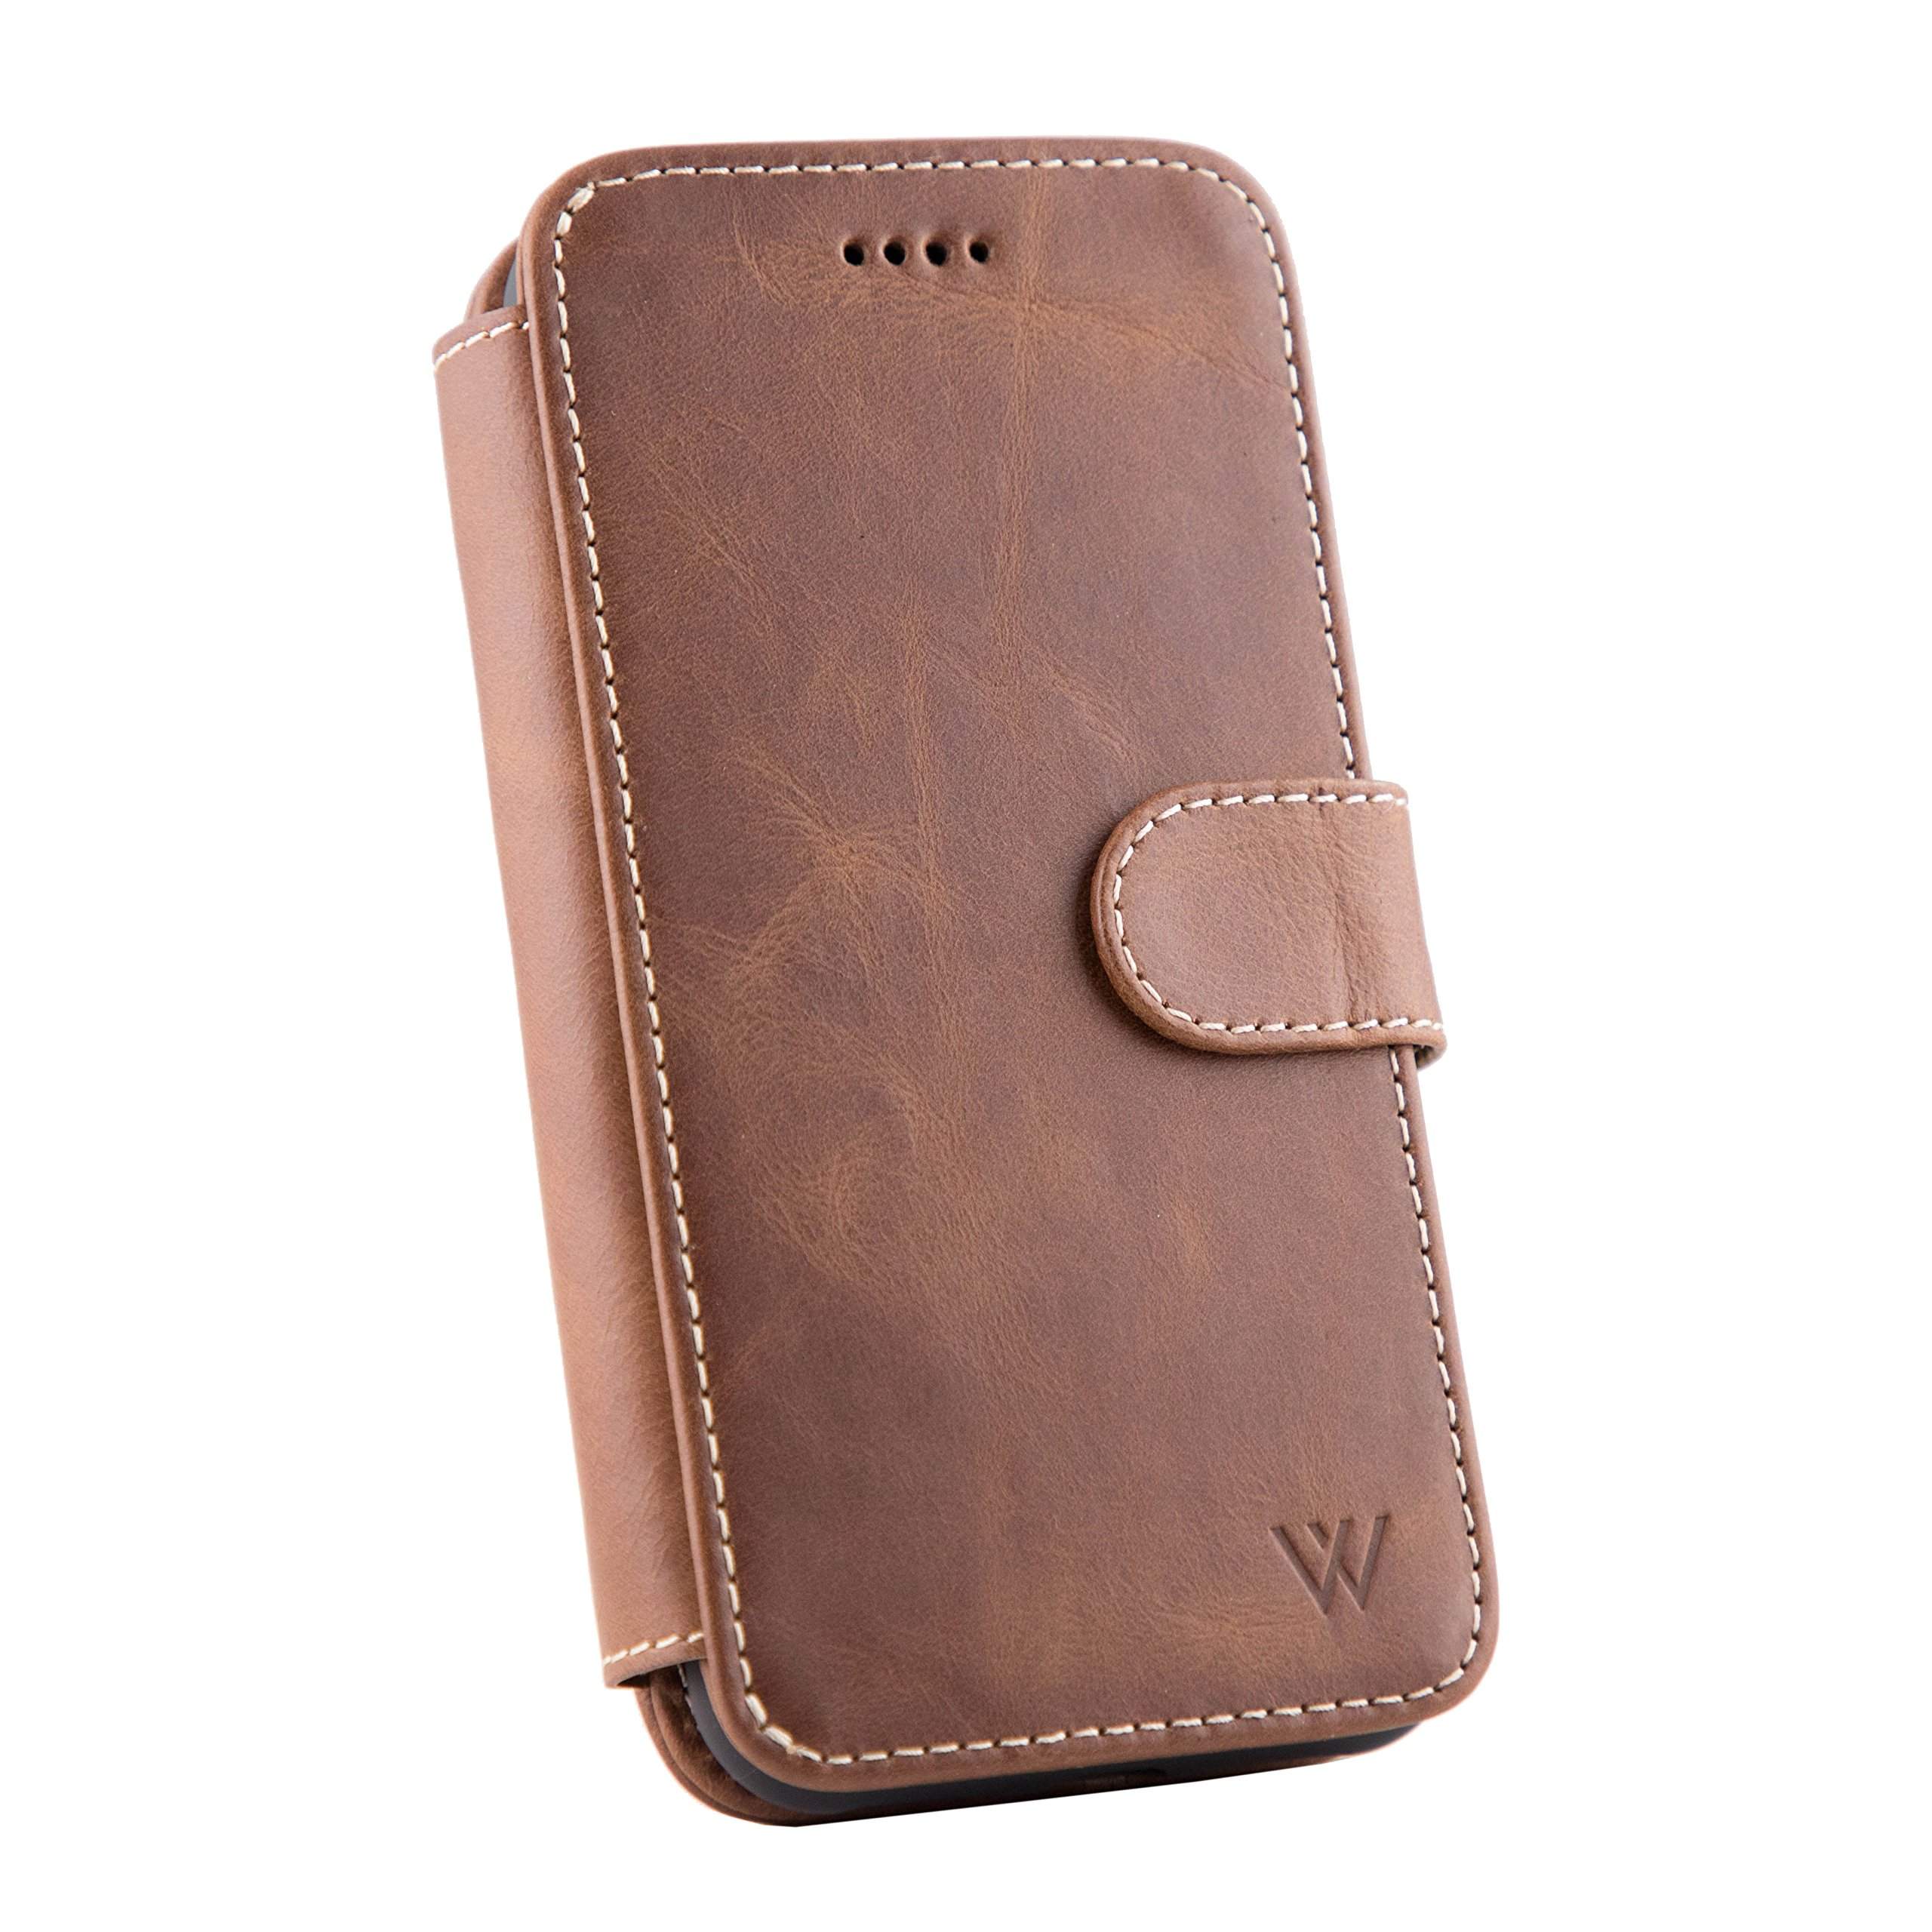 Wilken iPhone Xs Max Leather Wallet with Detachable Phone Case | Wireless Charging Compatible | Top Grain Cowhide Leather | (Brown, XS Max) by W WILKEN